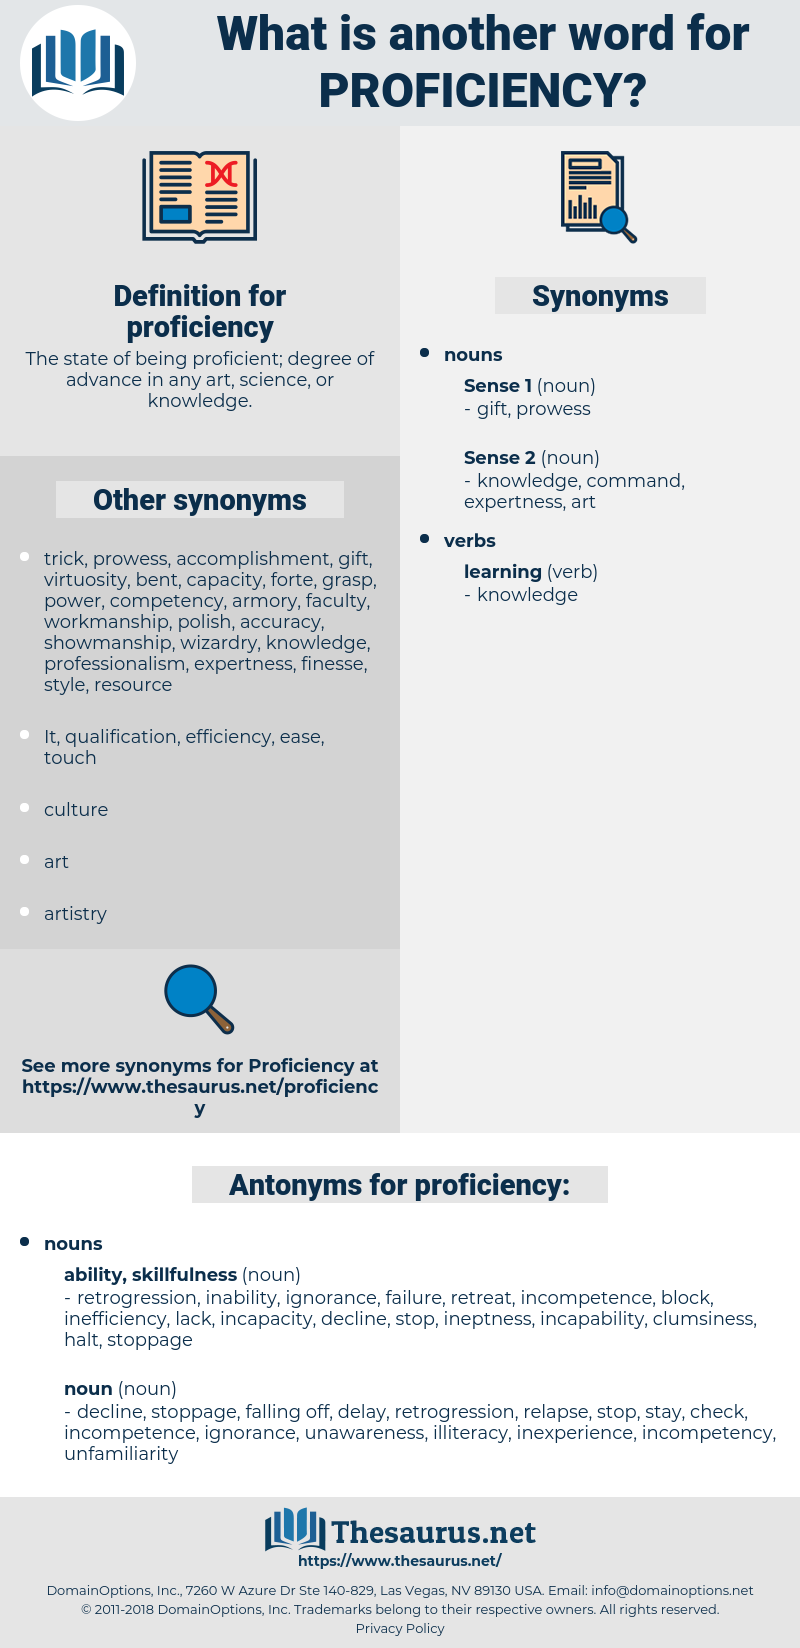 proficiency, synonym proficiency, another word for proficiency, words like proficiency, thesaurus proficiency